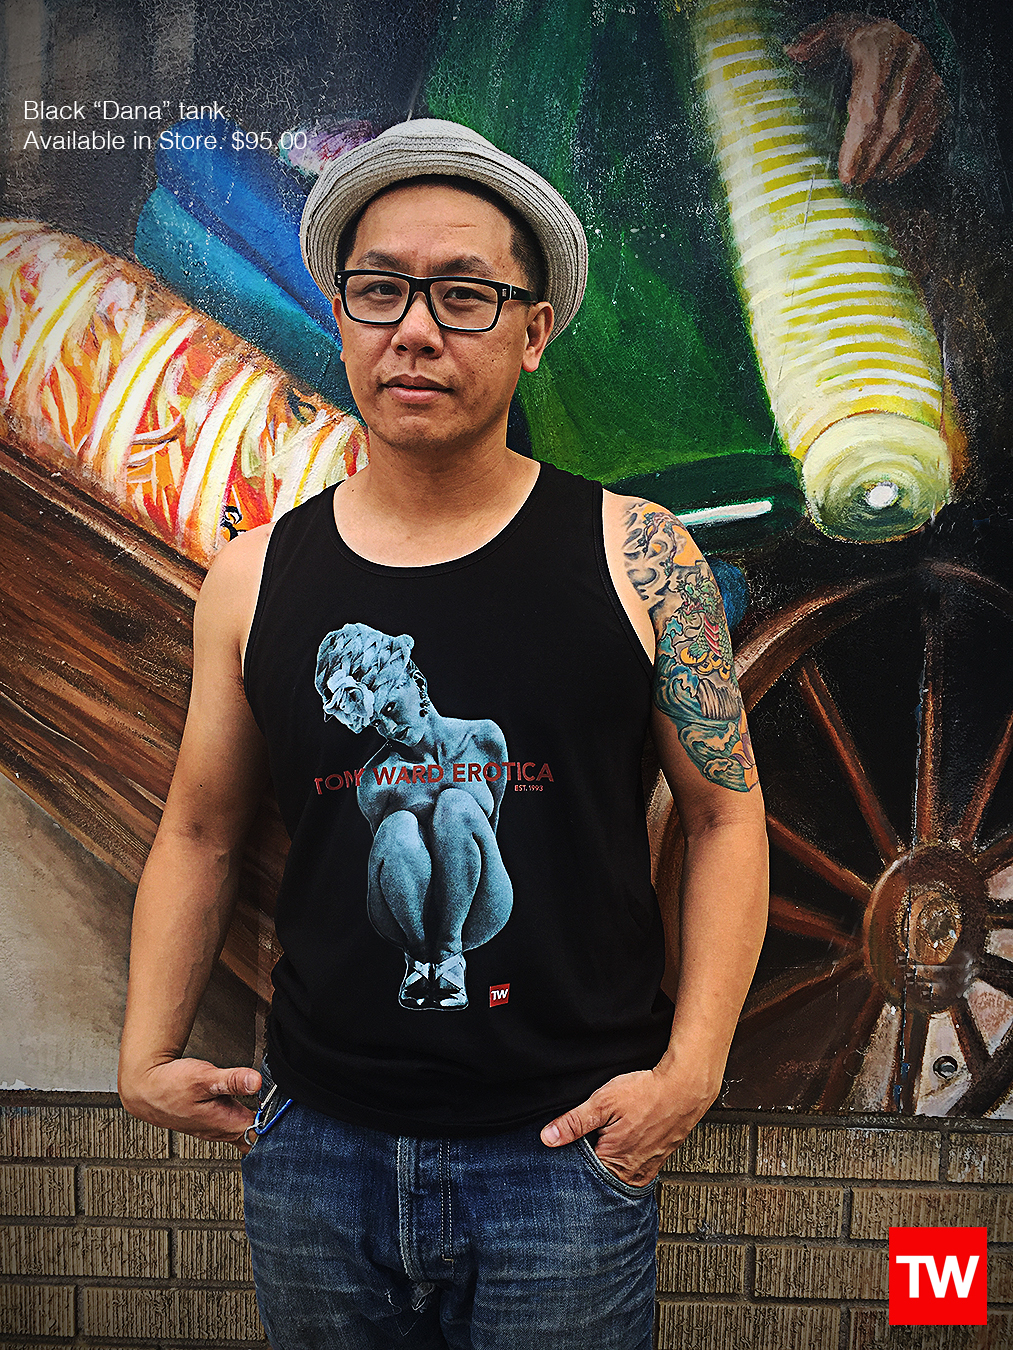 Tony_Ward_Studio_e_commerce_store_t-shirts_black_dana_tank_sale_model_Doug_Wong